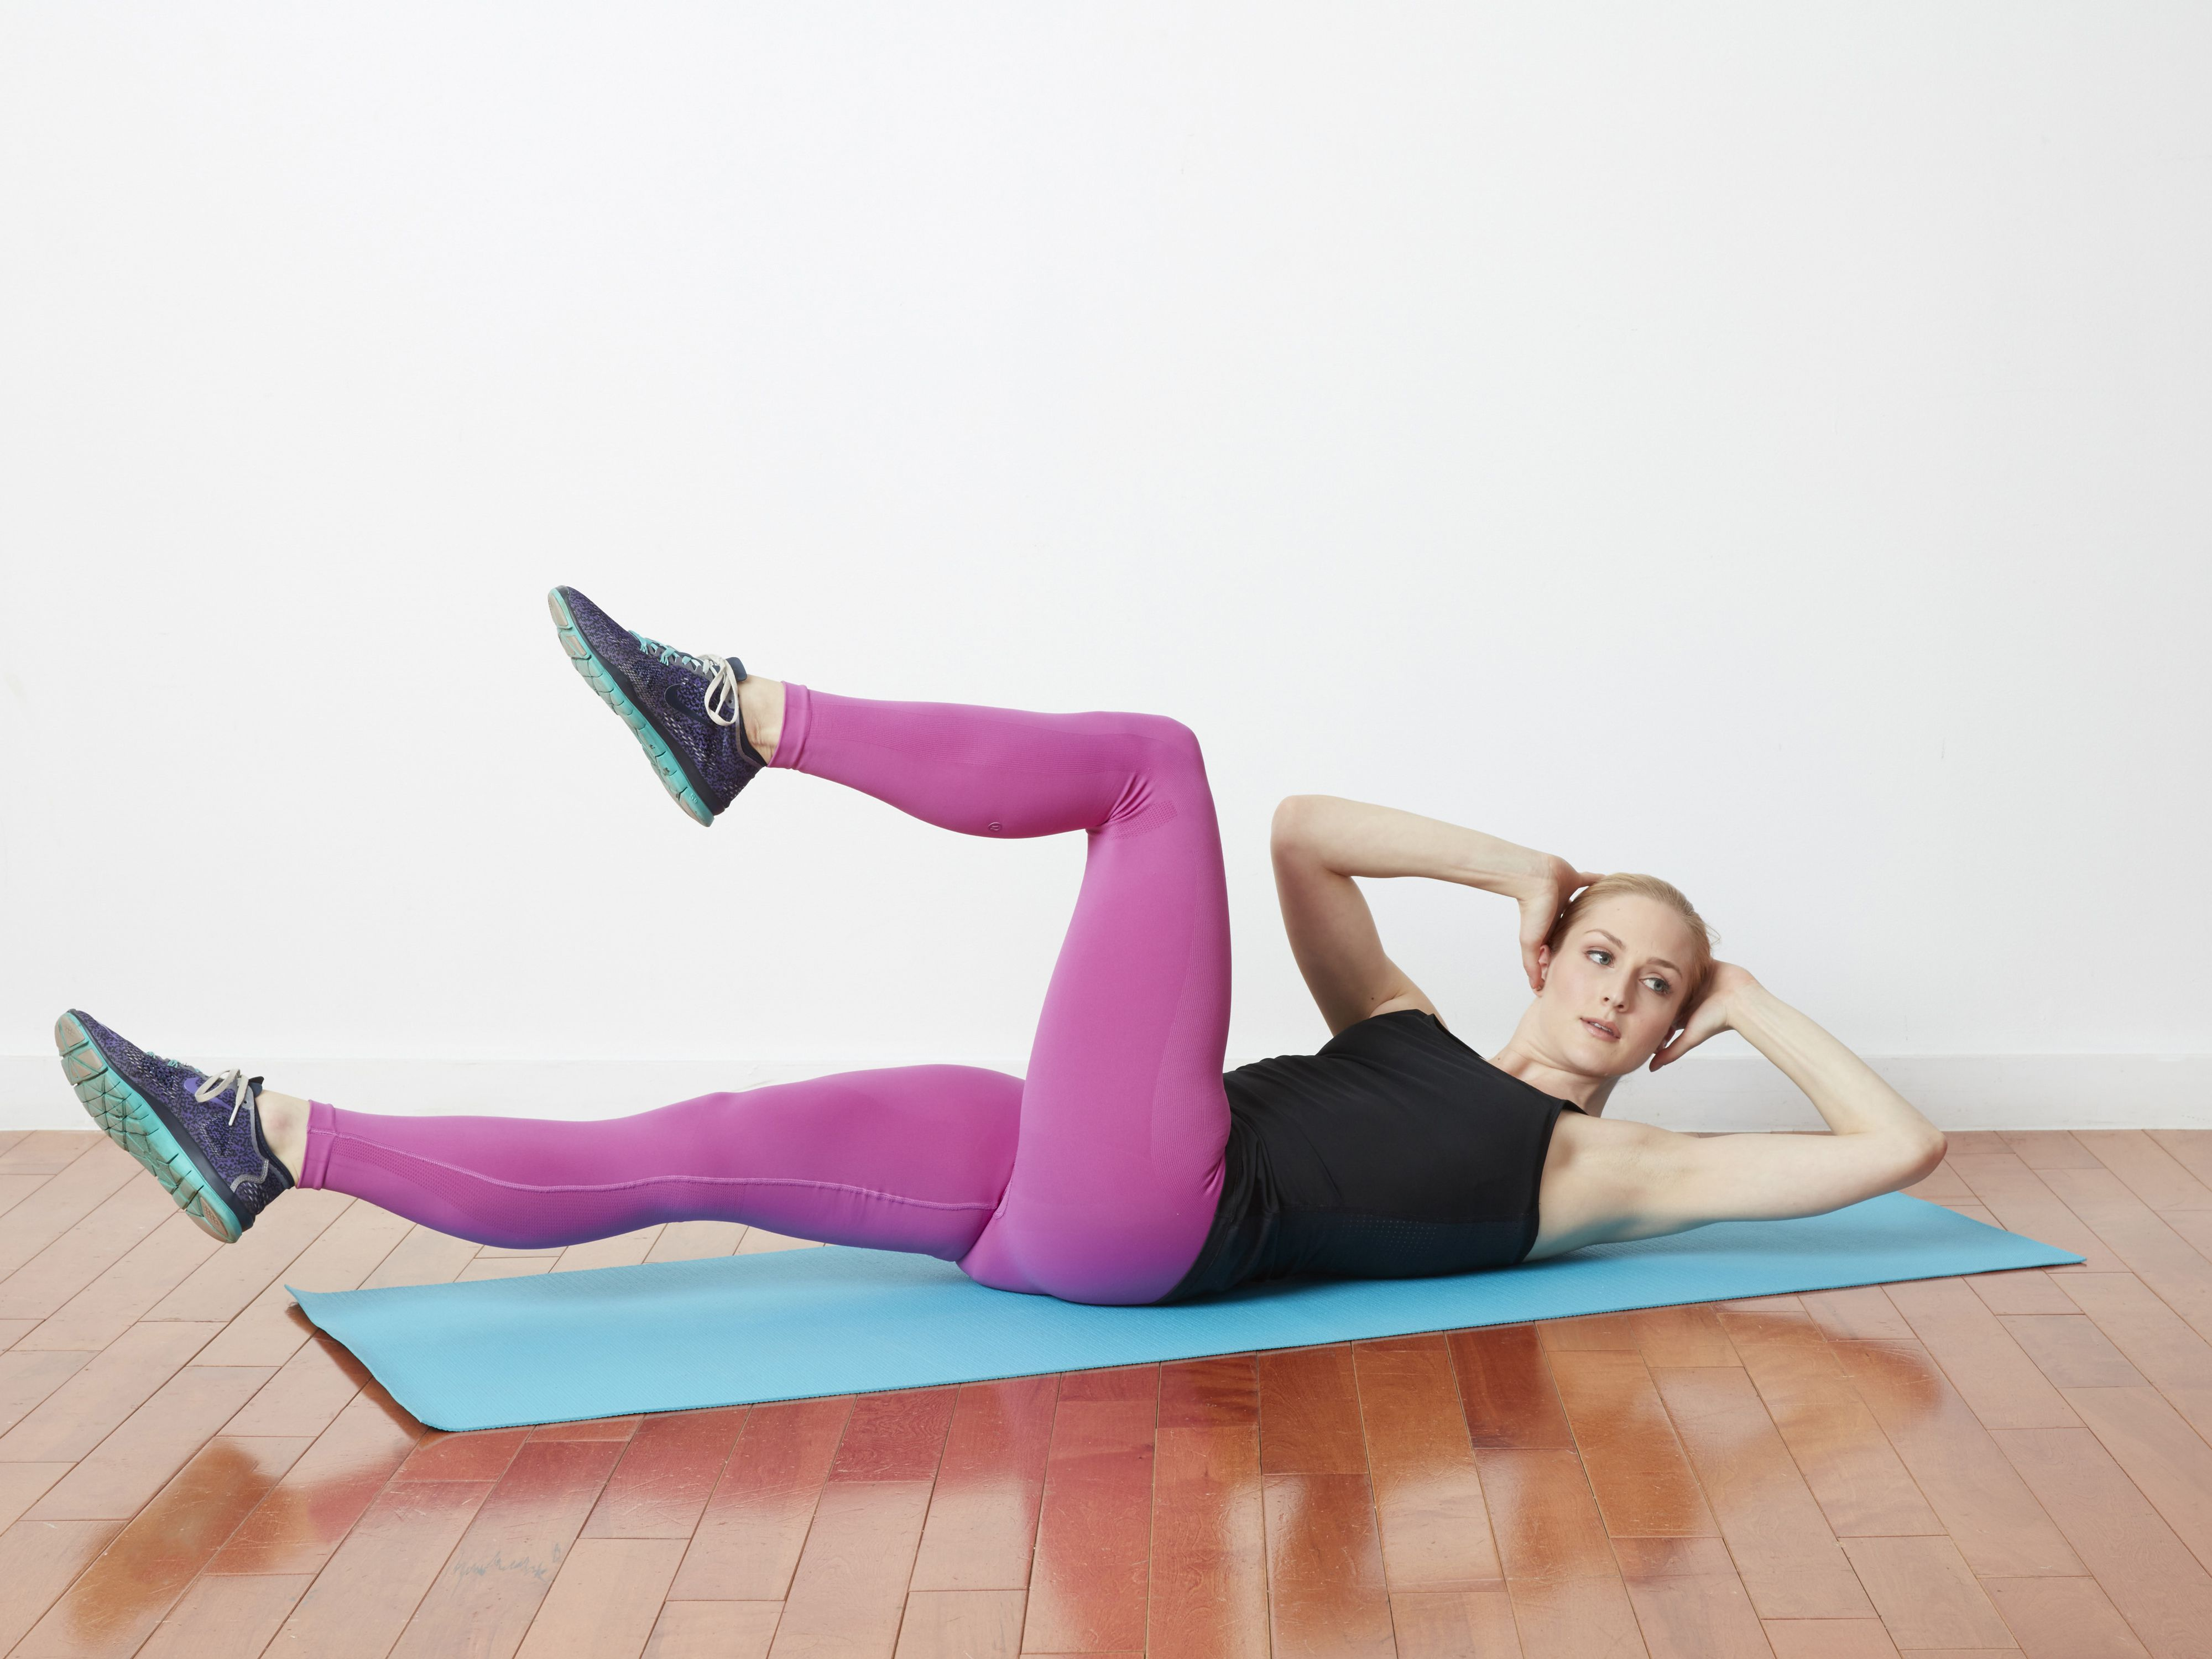 How to Exercise at Home During Coronavirus Outbreak